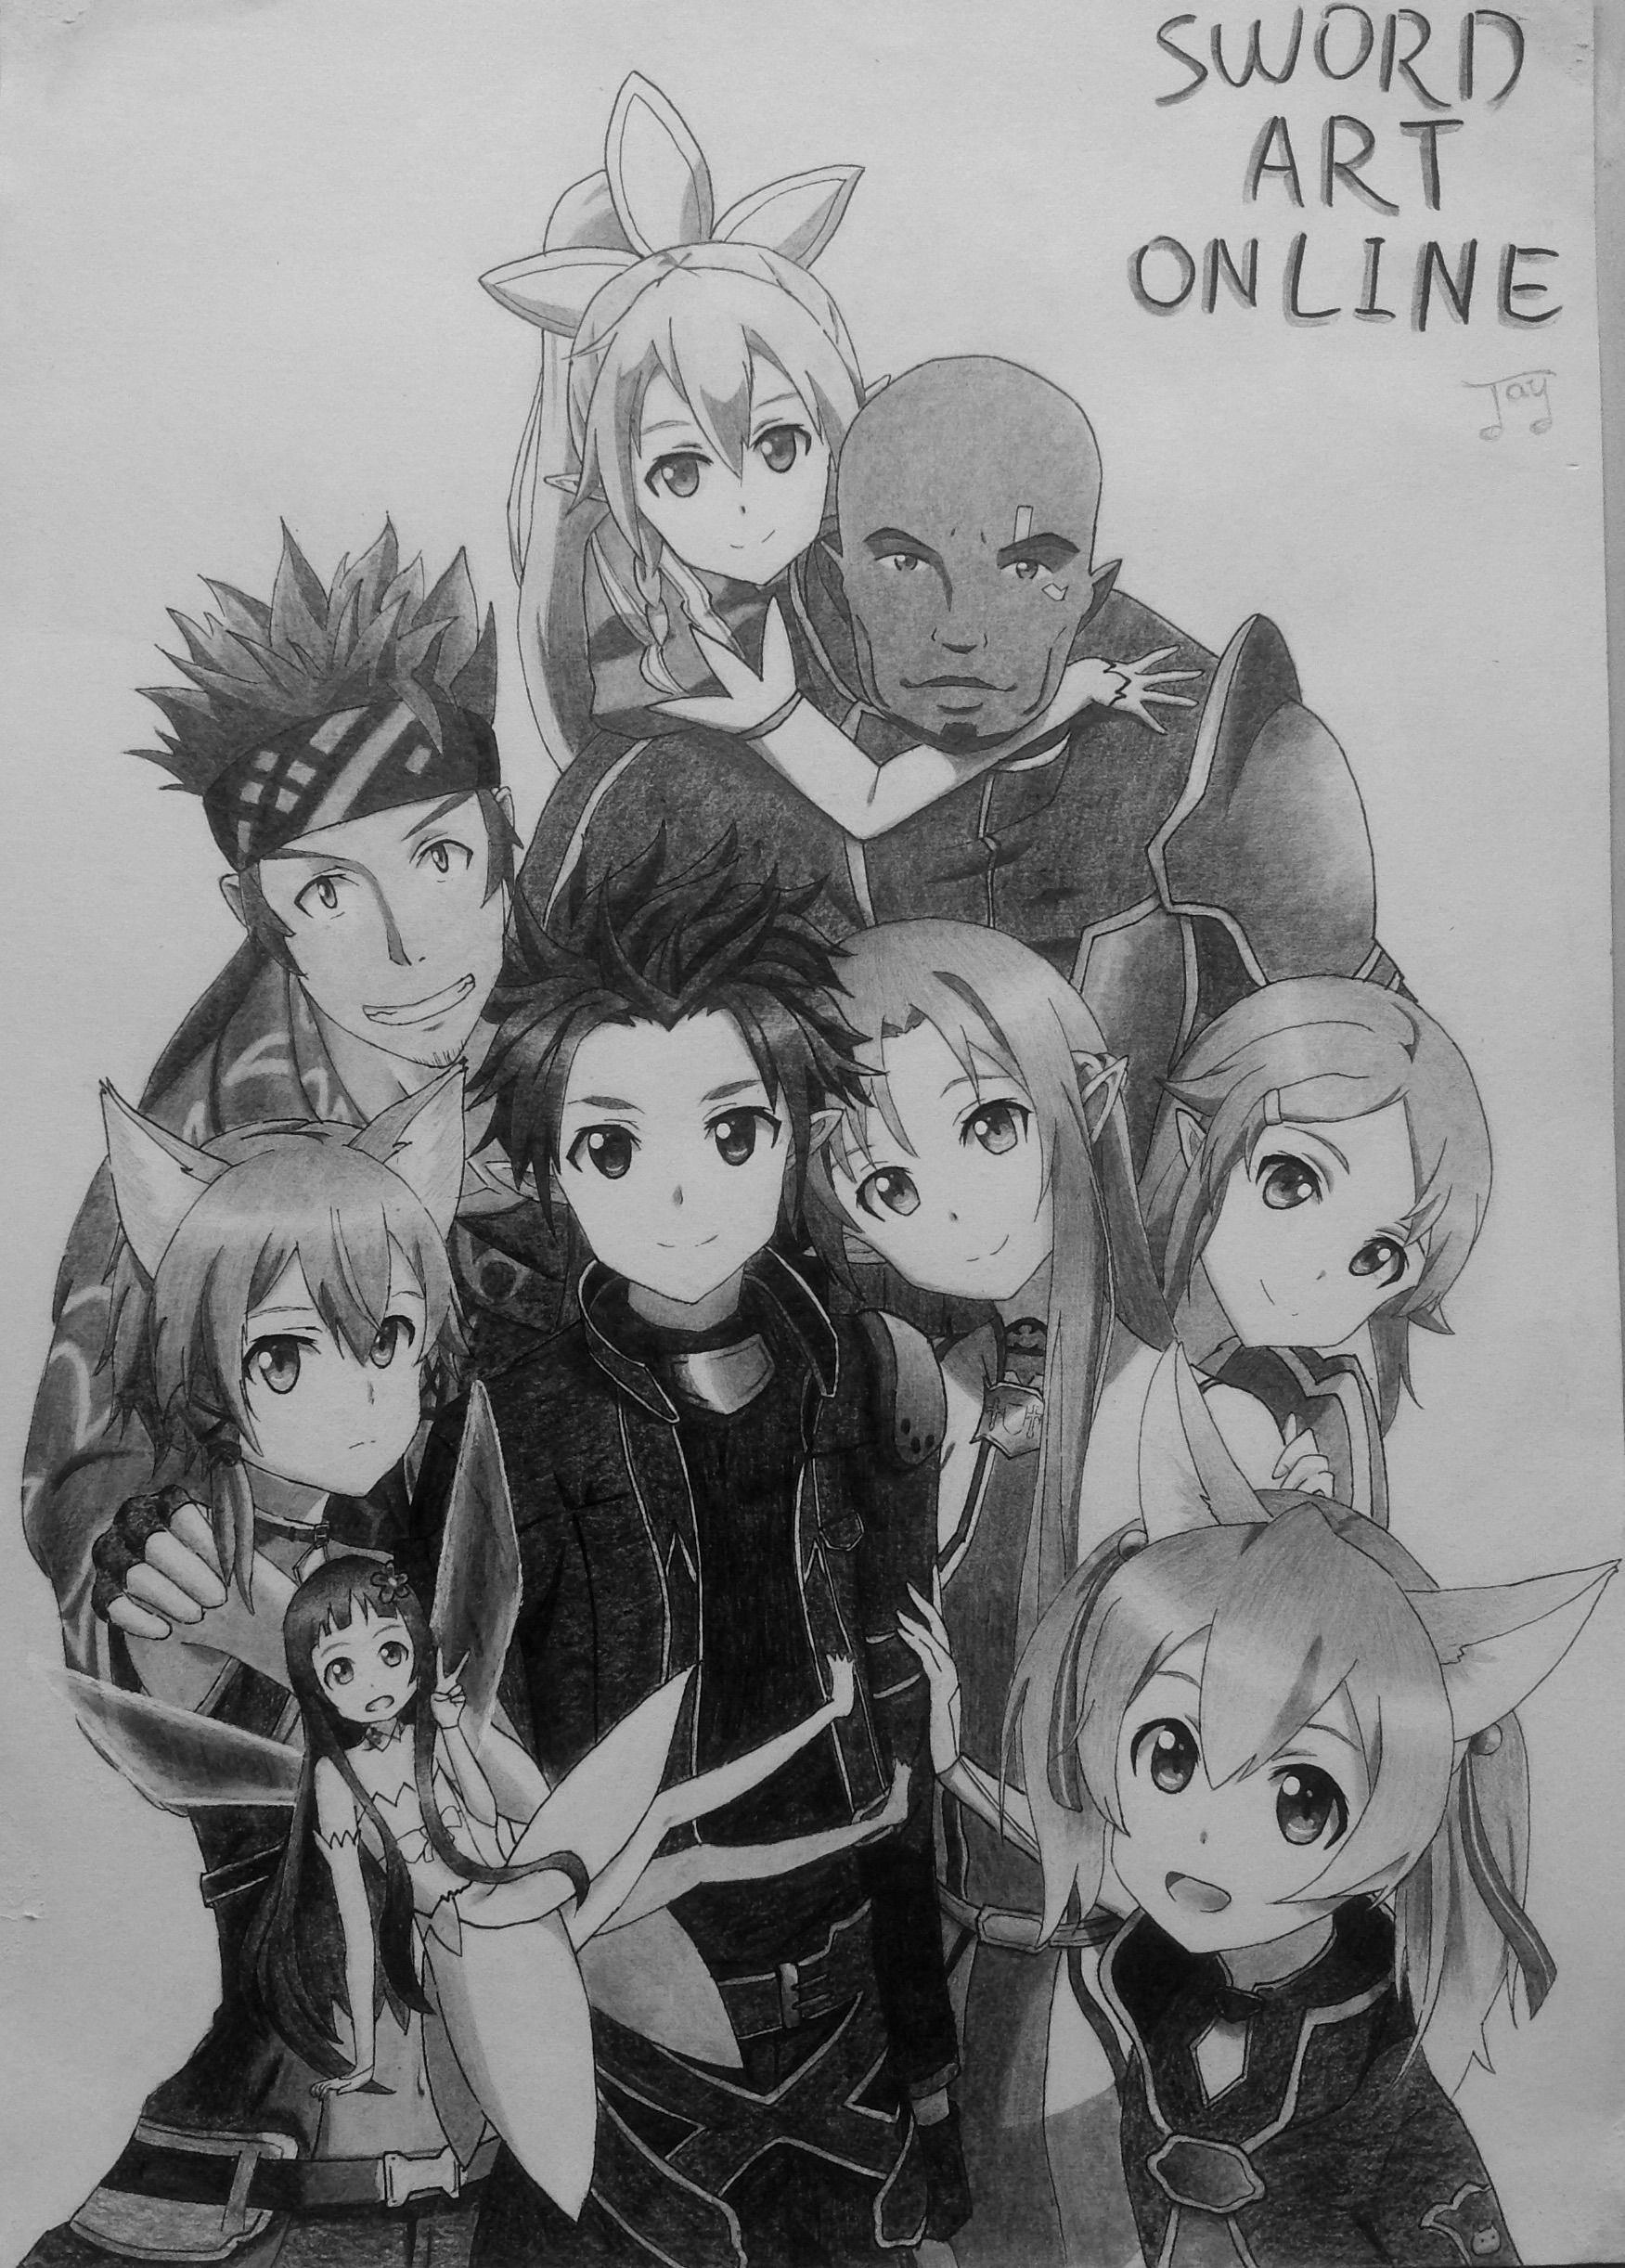 Sword art online pencil drawing